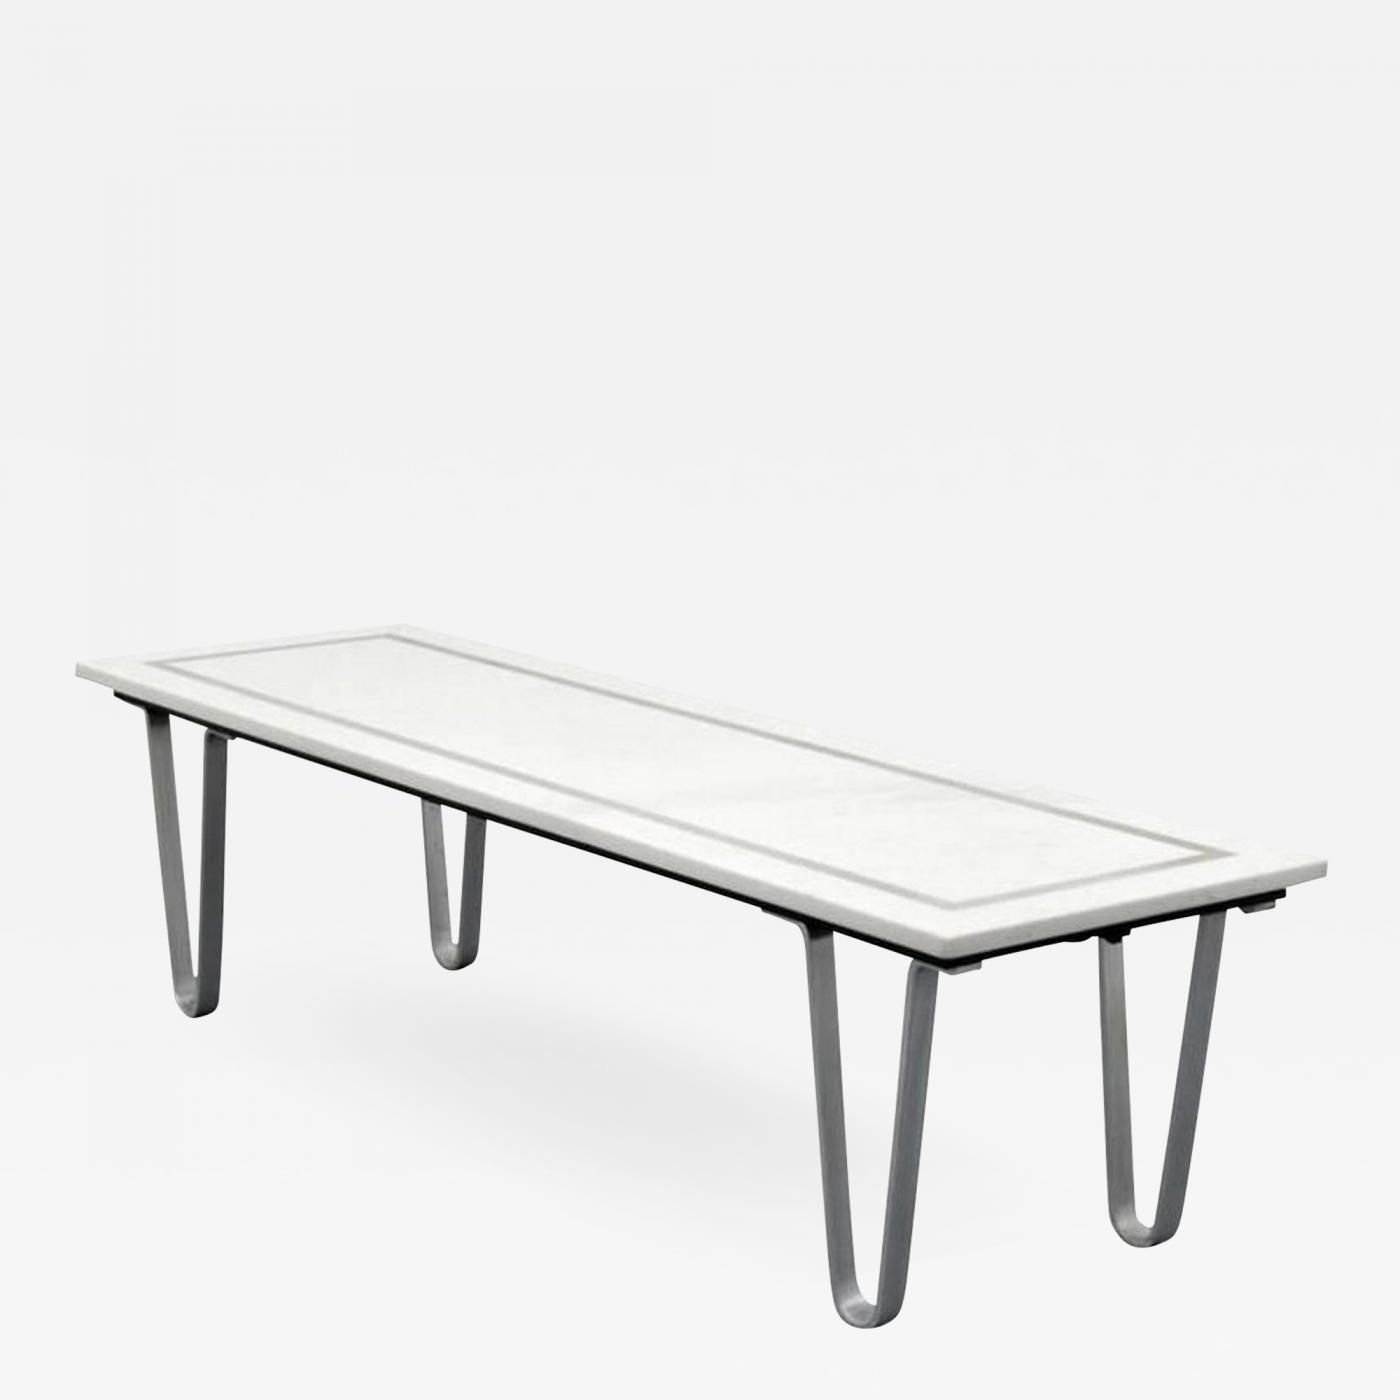 Listings / Furniture / Tables / Coffee Tables · Milo Baughman ...